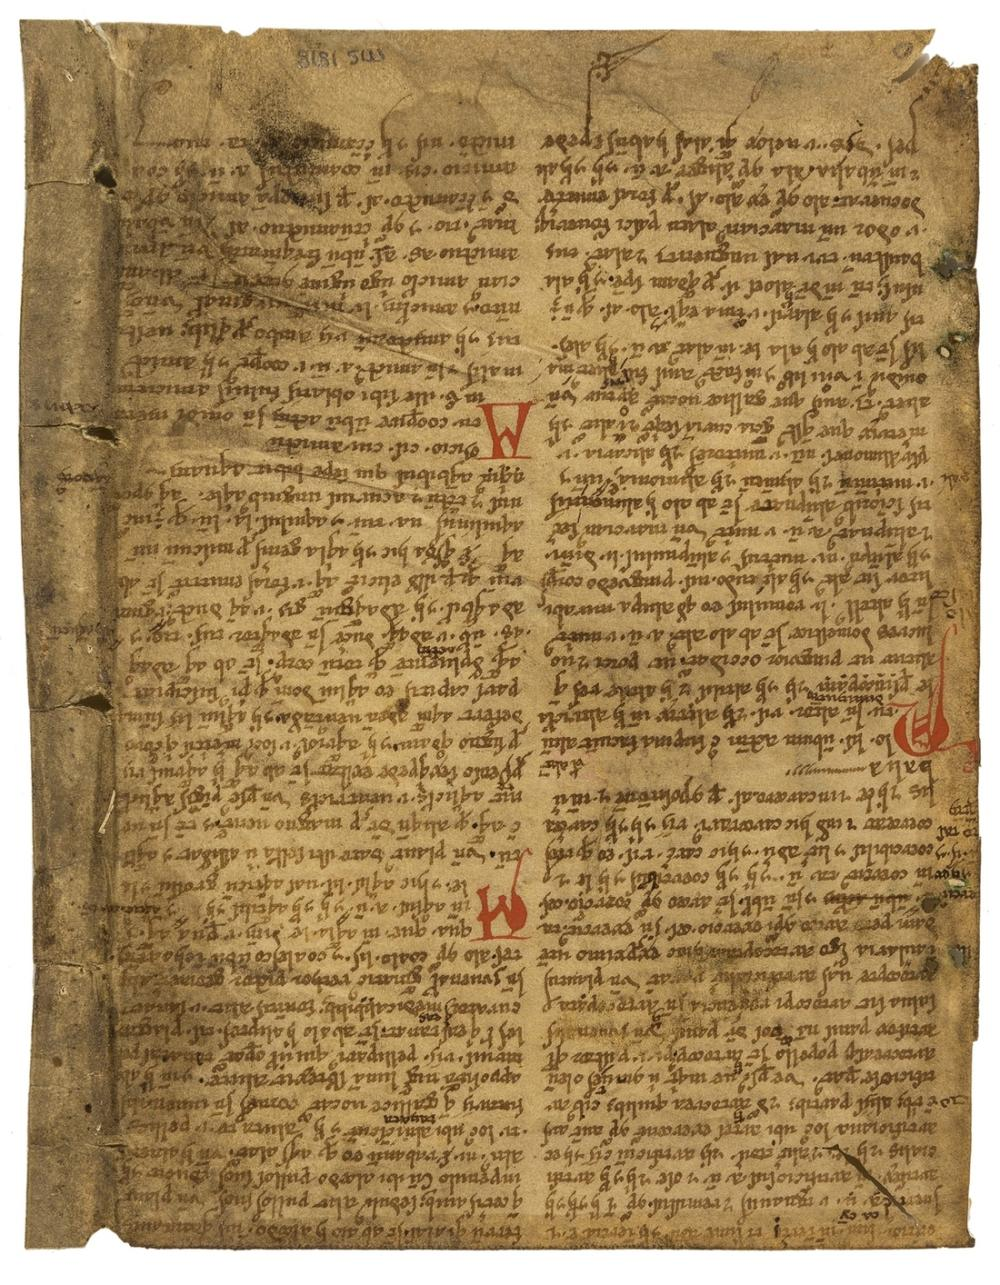 Osbern of Gloucester. Panormia or Liber derivationum, manuscript in Latin, on vellum, early gothic bookhand, double column, 41 lines, in brown ink, 5 2-line initials in red, descenders in lower margin …